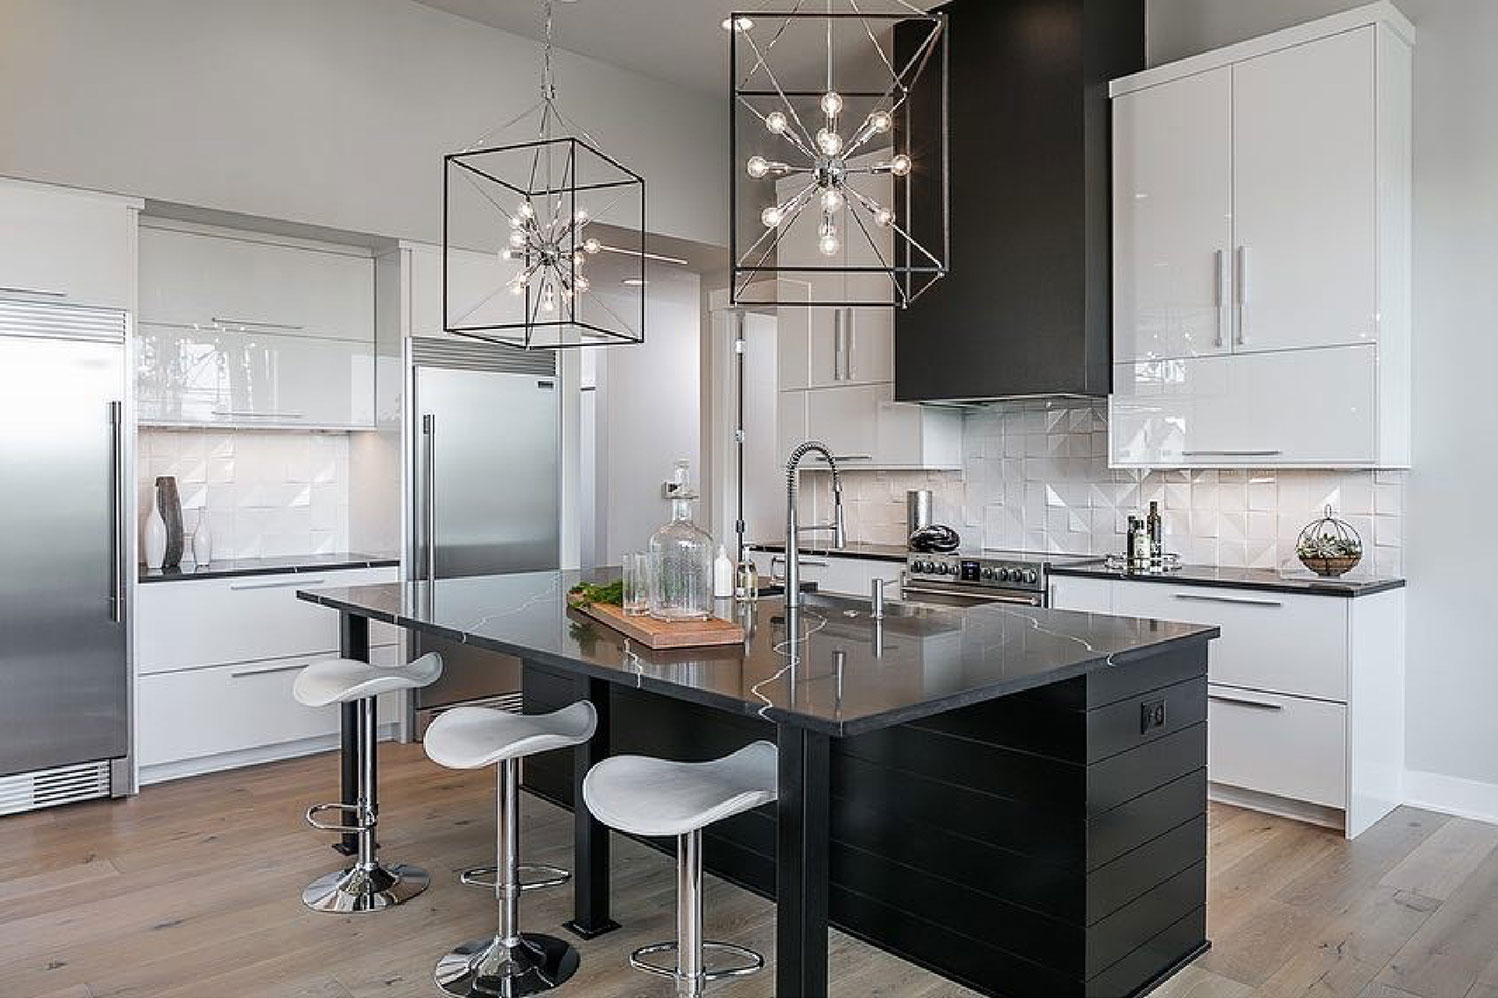 Image of kitchen with black island and countertops, and white cabinets with backsplash